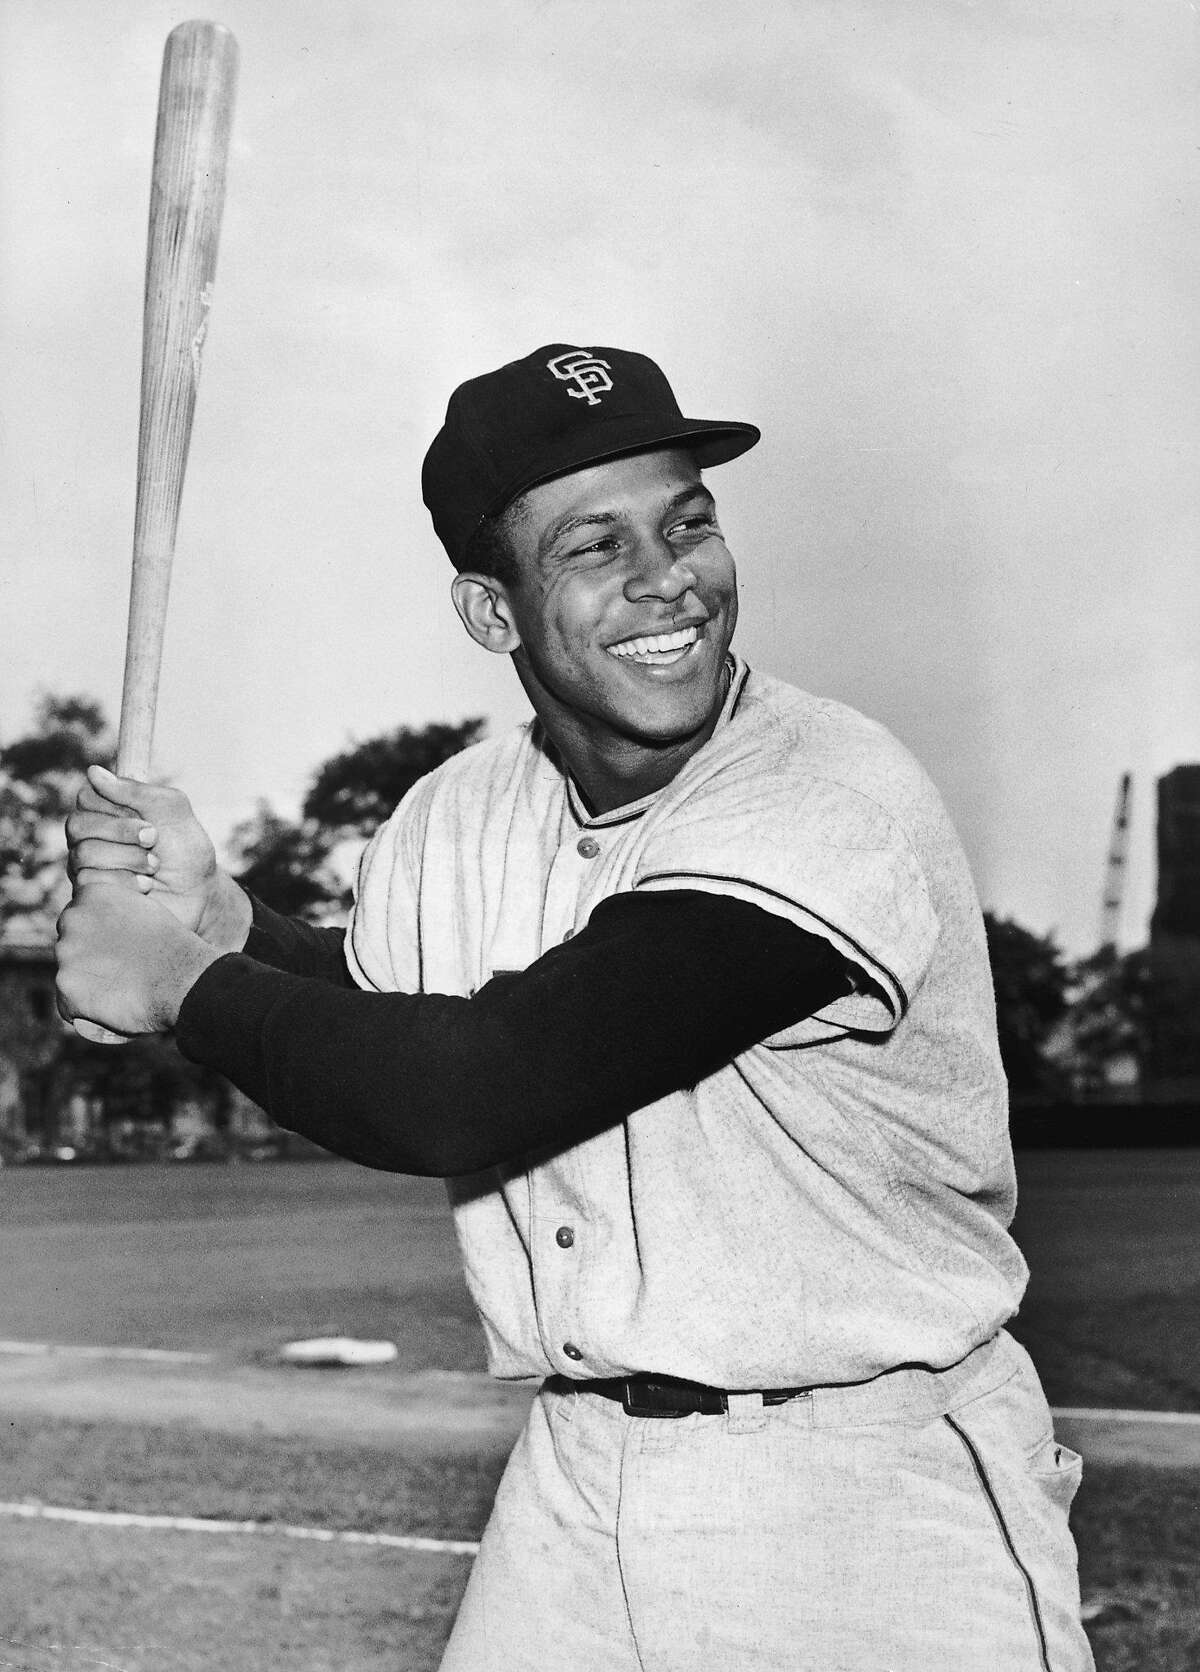 circa 1961: Portrait of Puerto Rican-born baseball player Orlando Cepeda of the San Francisco Giants smiling in uniform while posing in batting stance. (Photo by Hulton Archive/Getty Images)